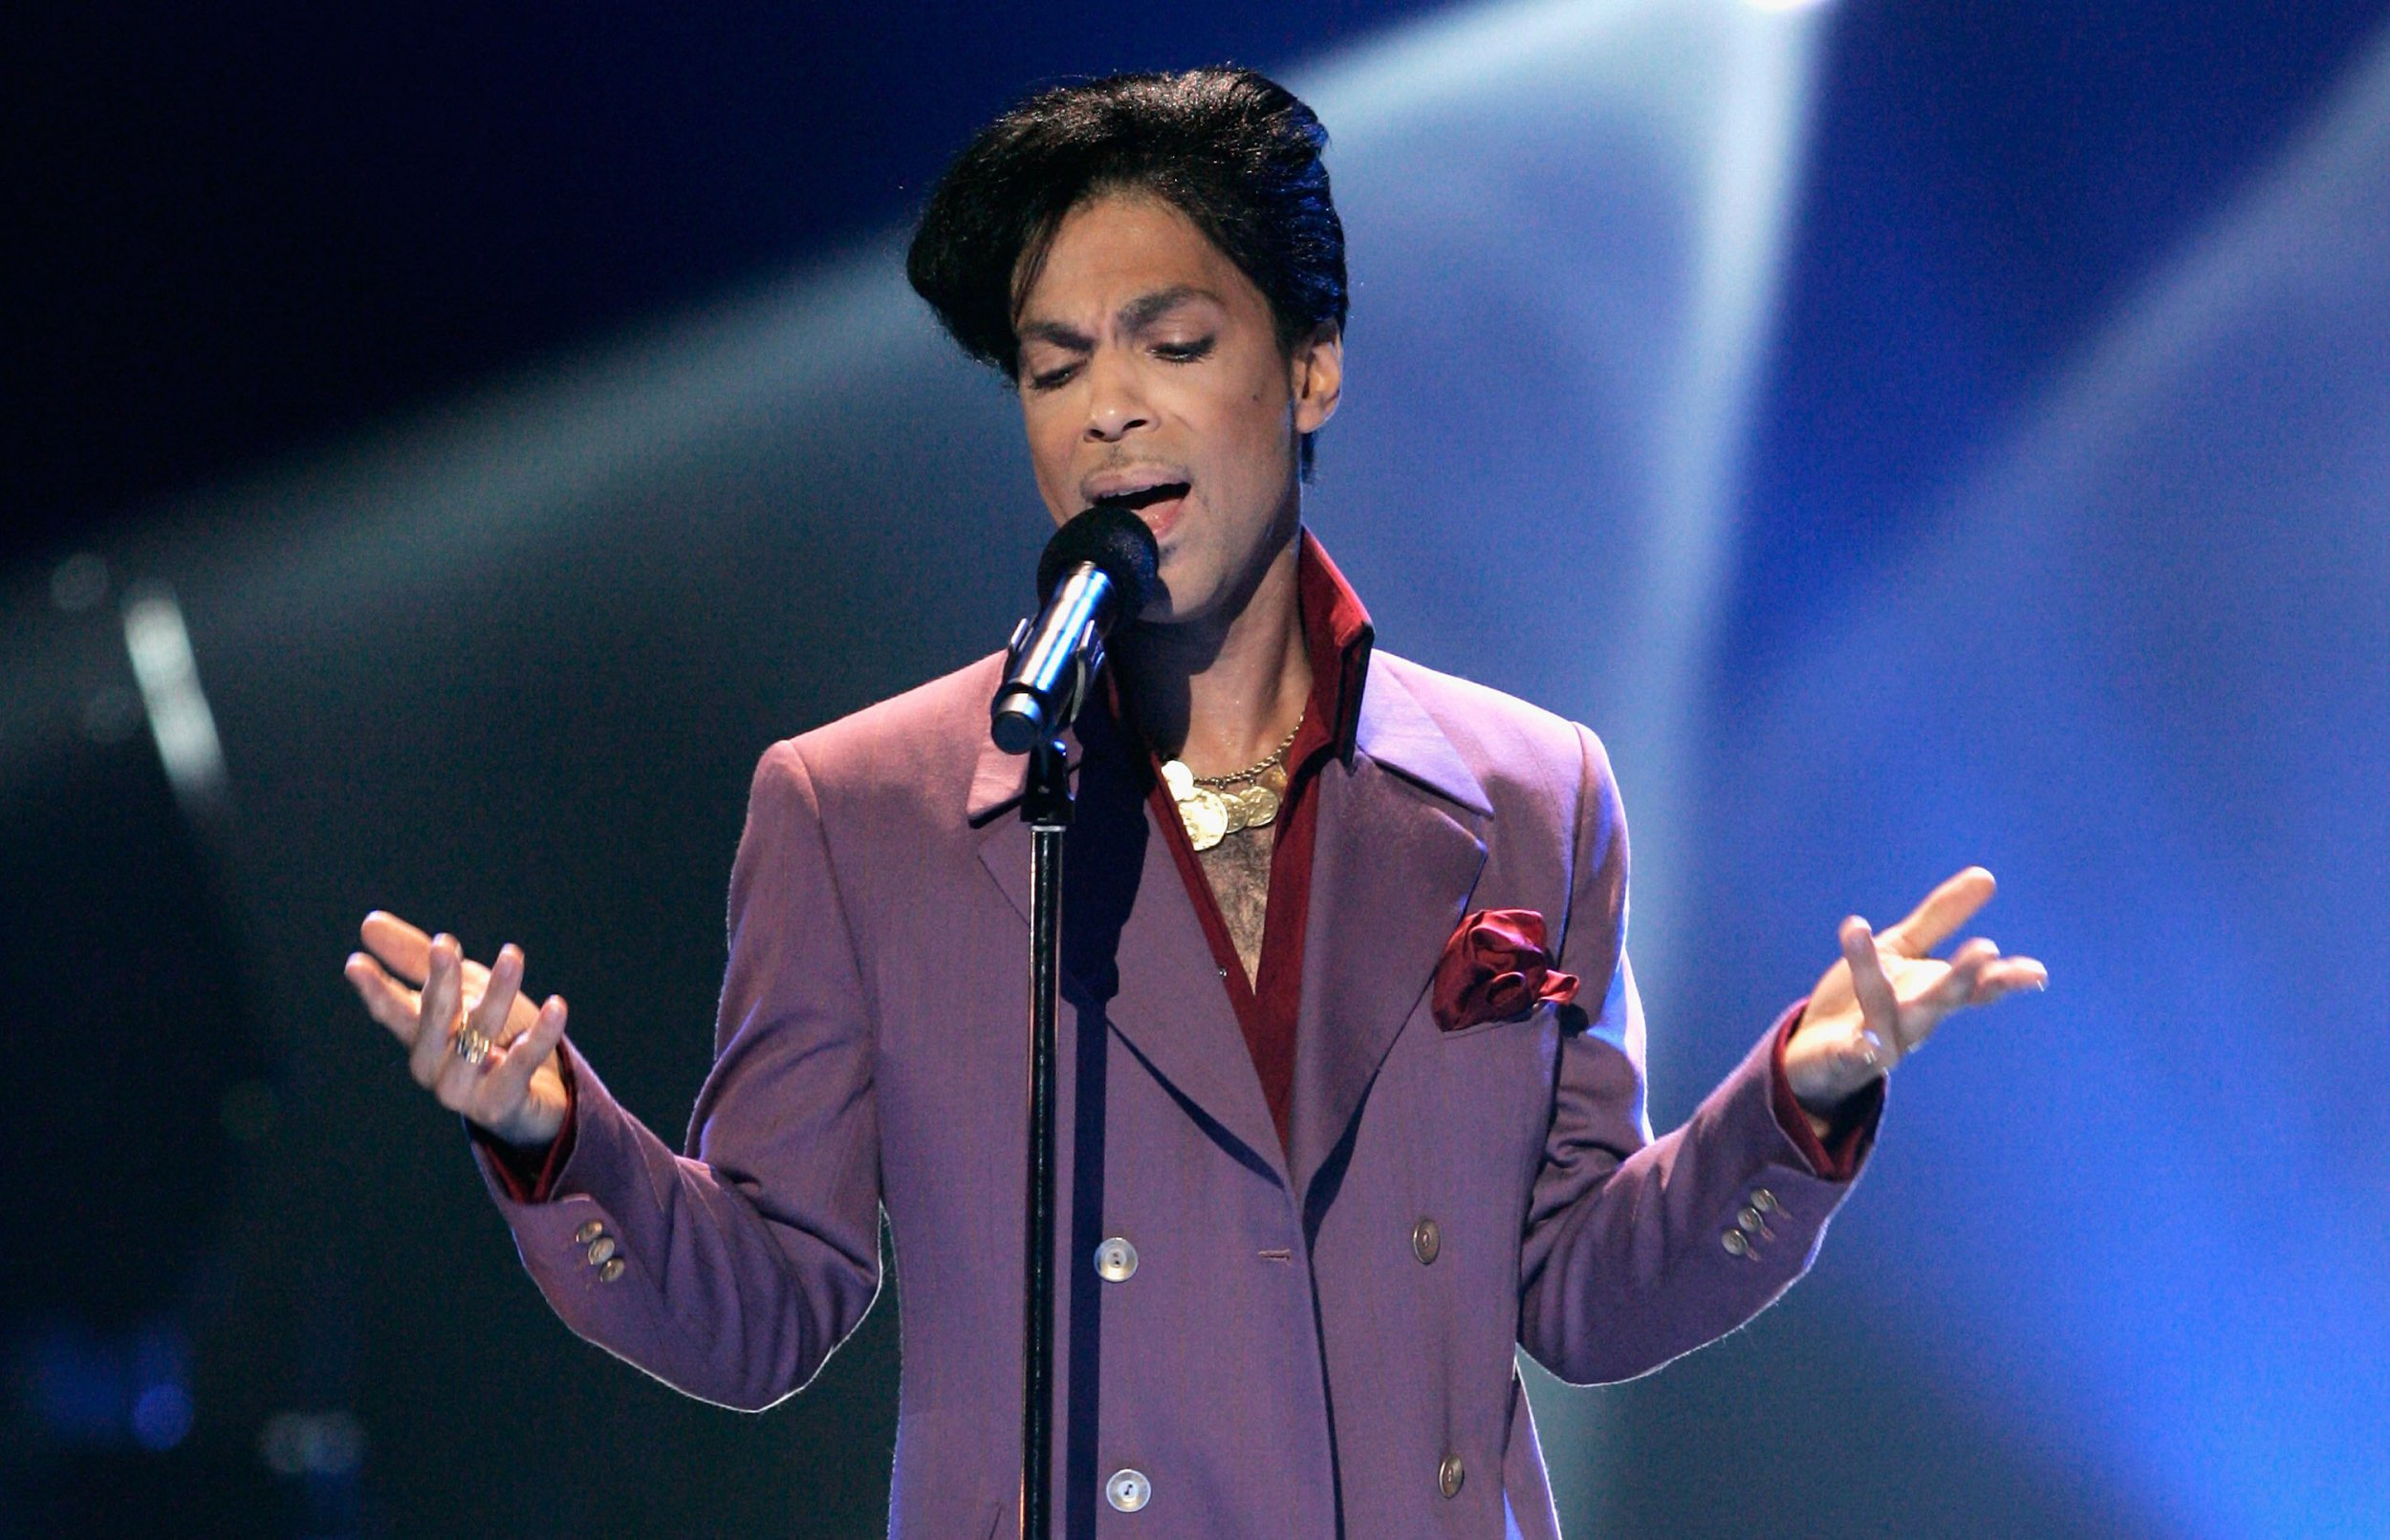 Prince's handwritten poetry and lyrics could be released by Paisley Park